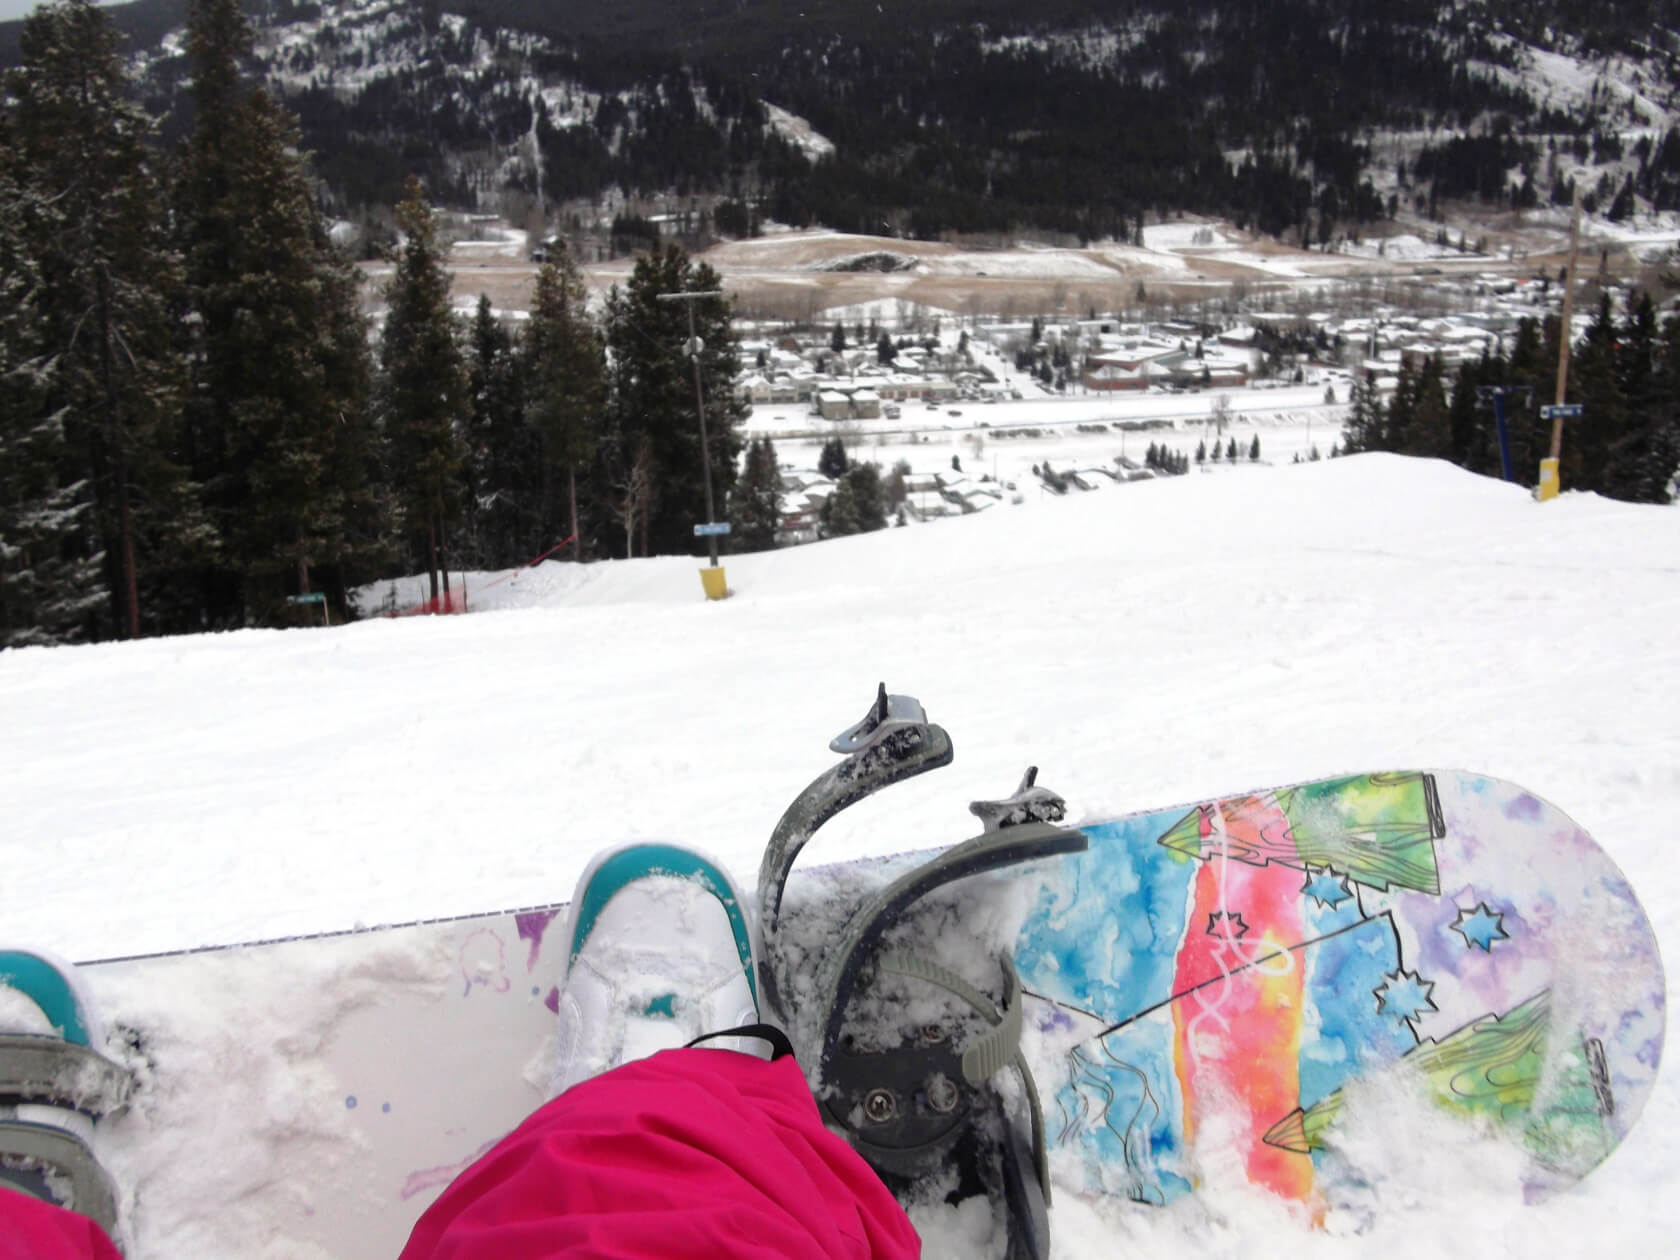 Snowboarding Makes My Toes Tingle